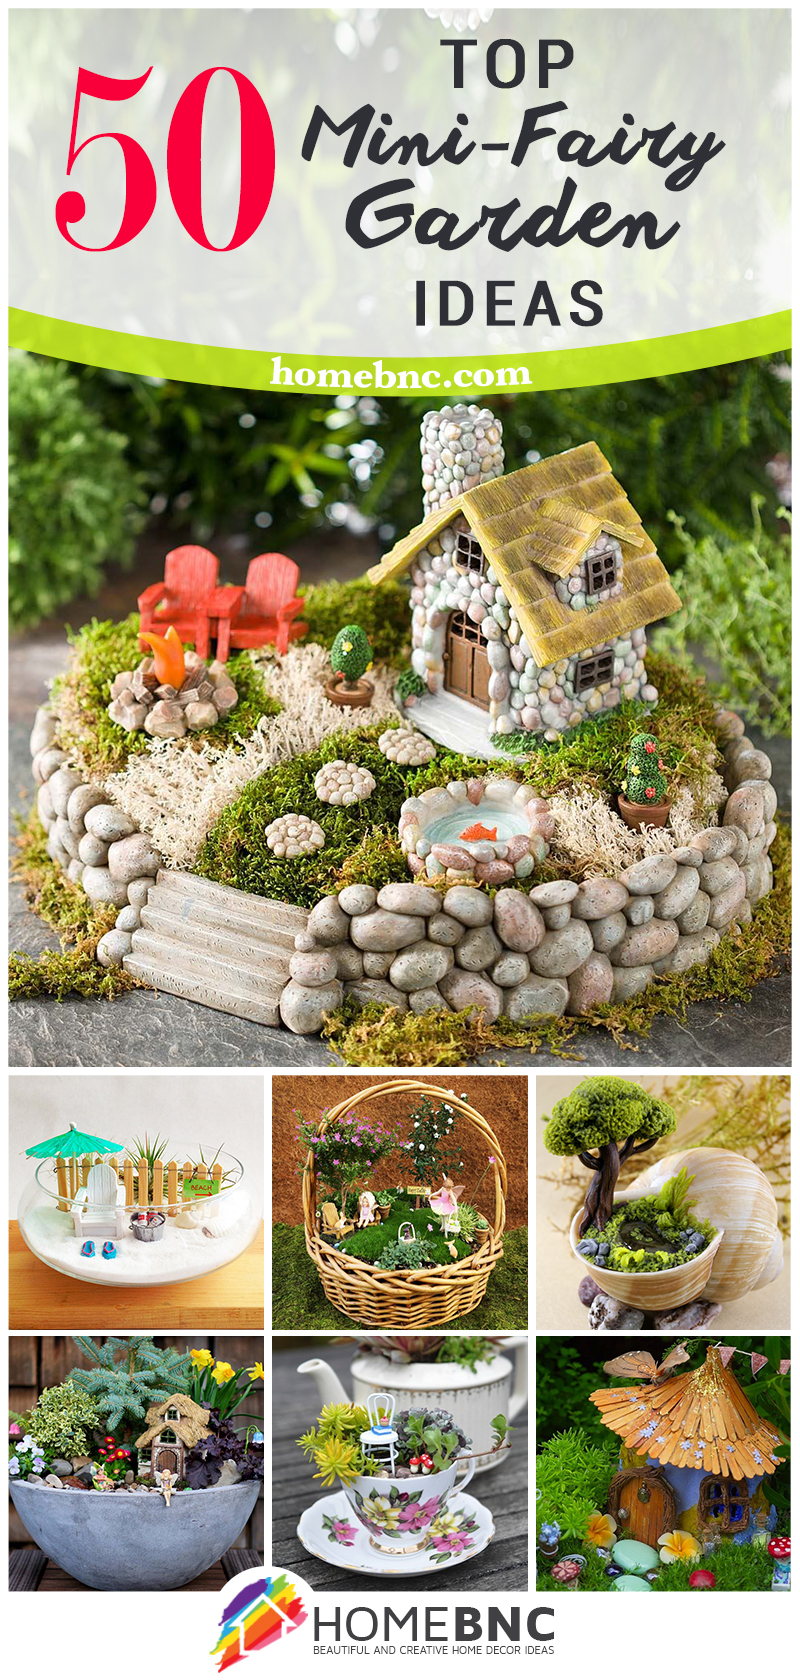 Diy Fairy Garden Ideas the 50 best diy miniature fairy garden ideas in 2017